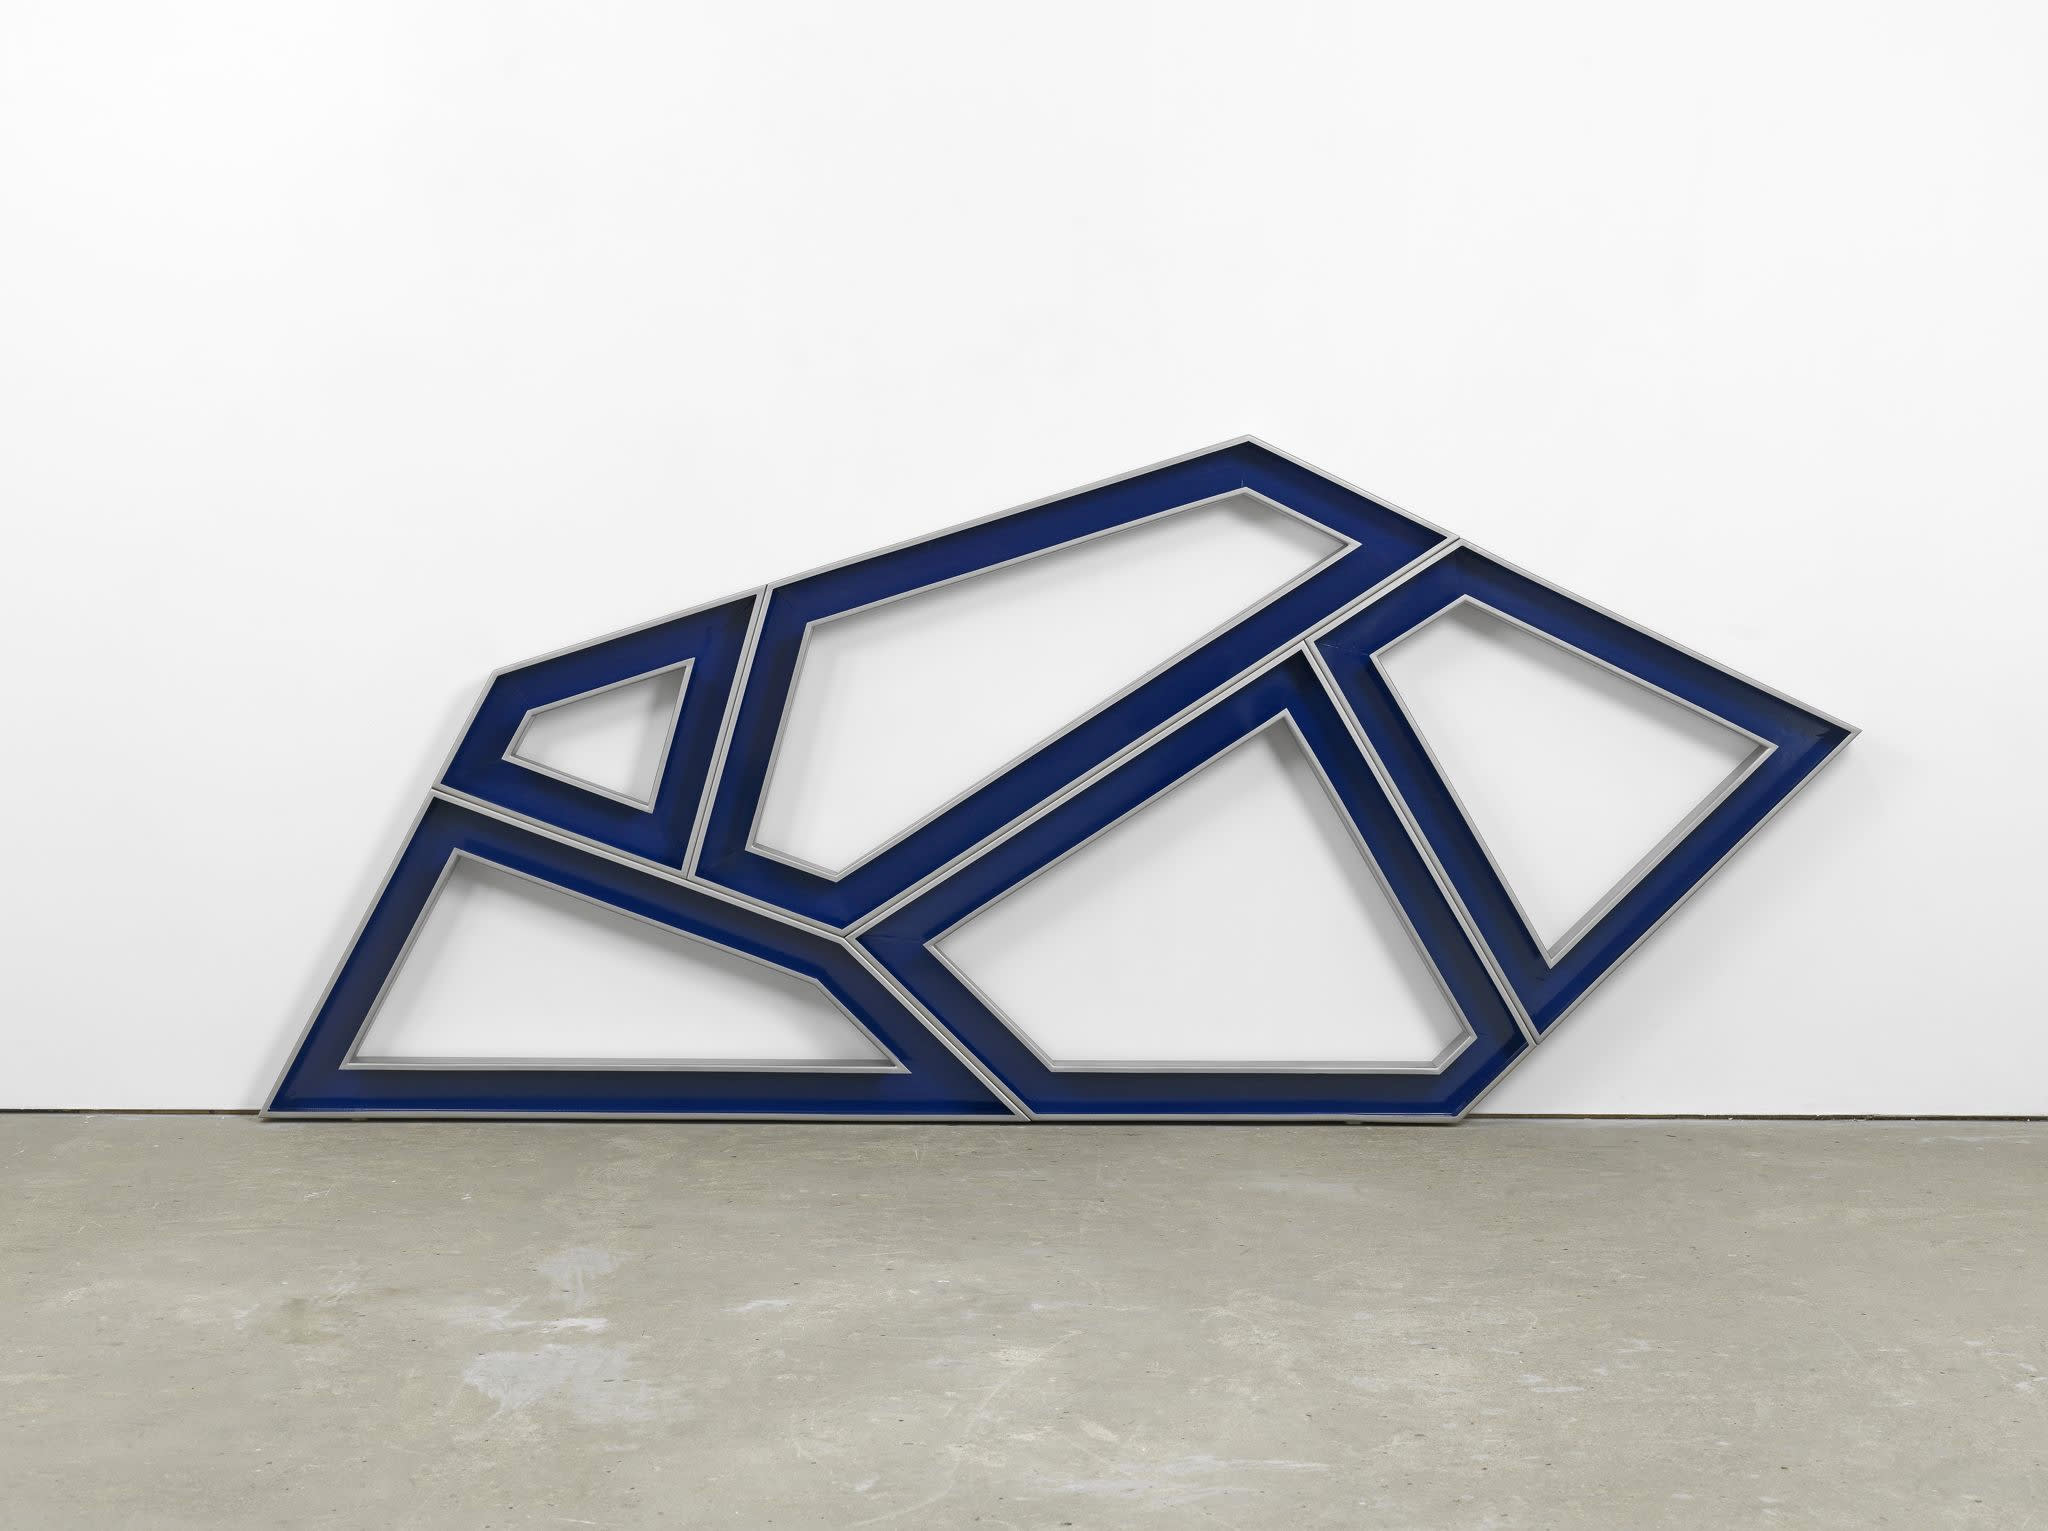 An image containing a sculpture by Richard Deacon of powder coated stainless steel